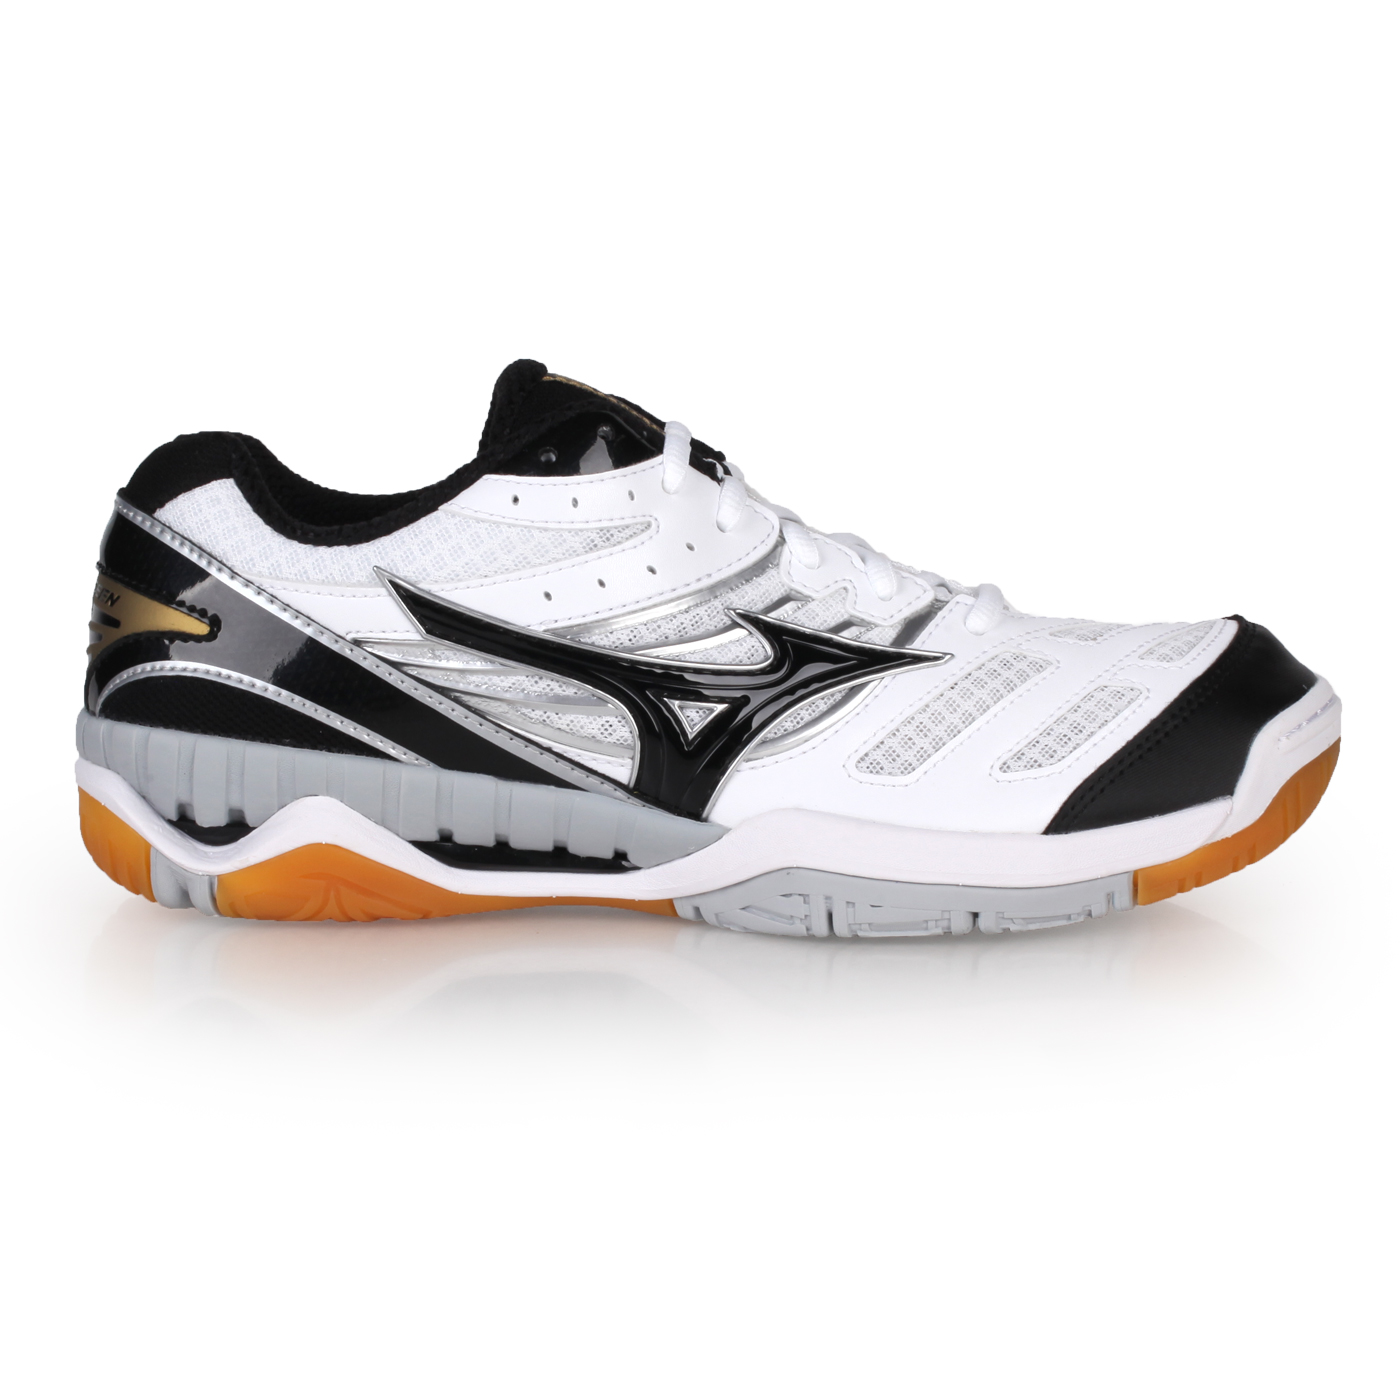 Mizuno wave rydeen men's volleyball shoes (free transport mizuno badminton shoes official website direct mail taiwan imported